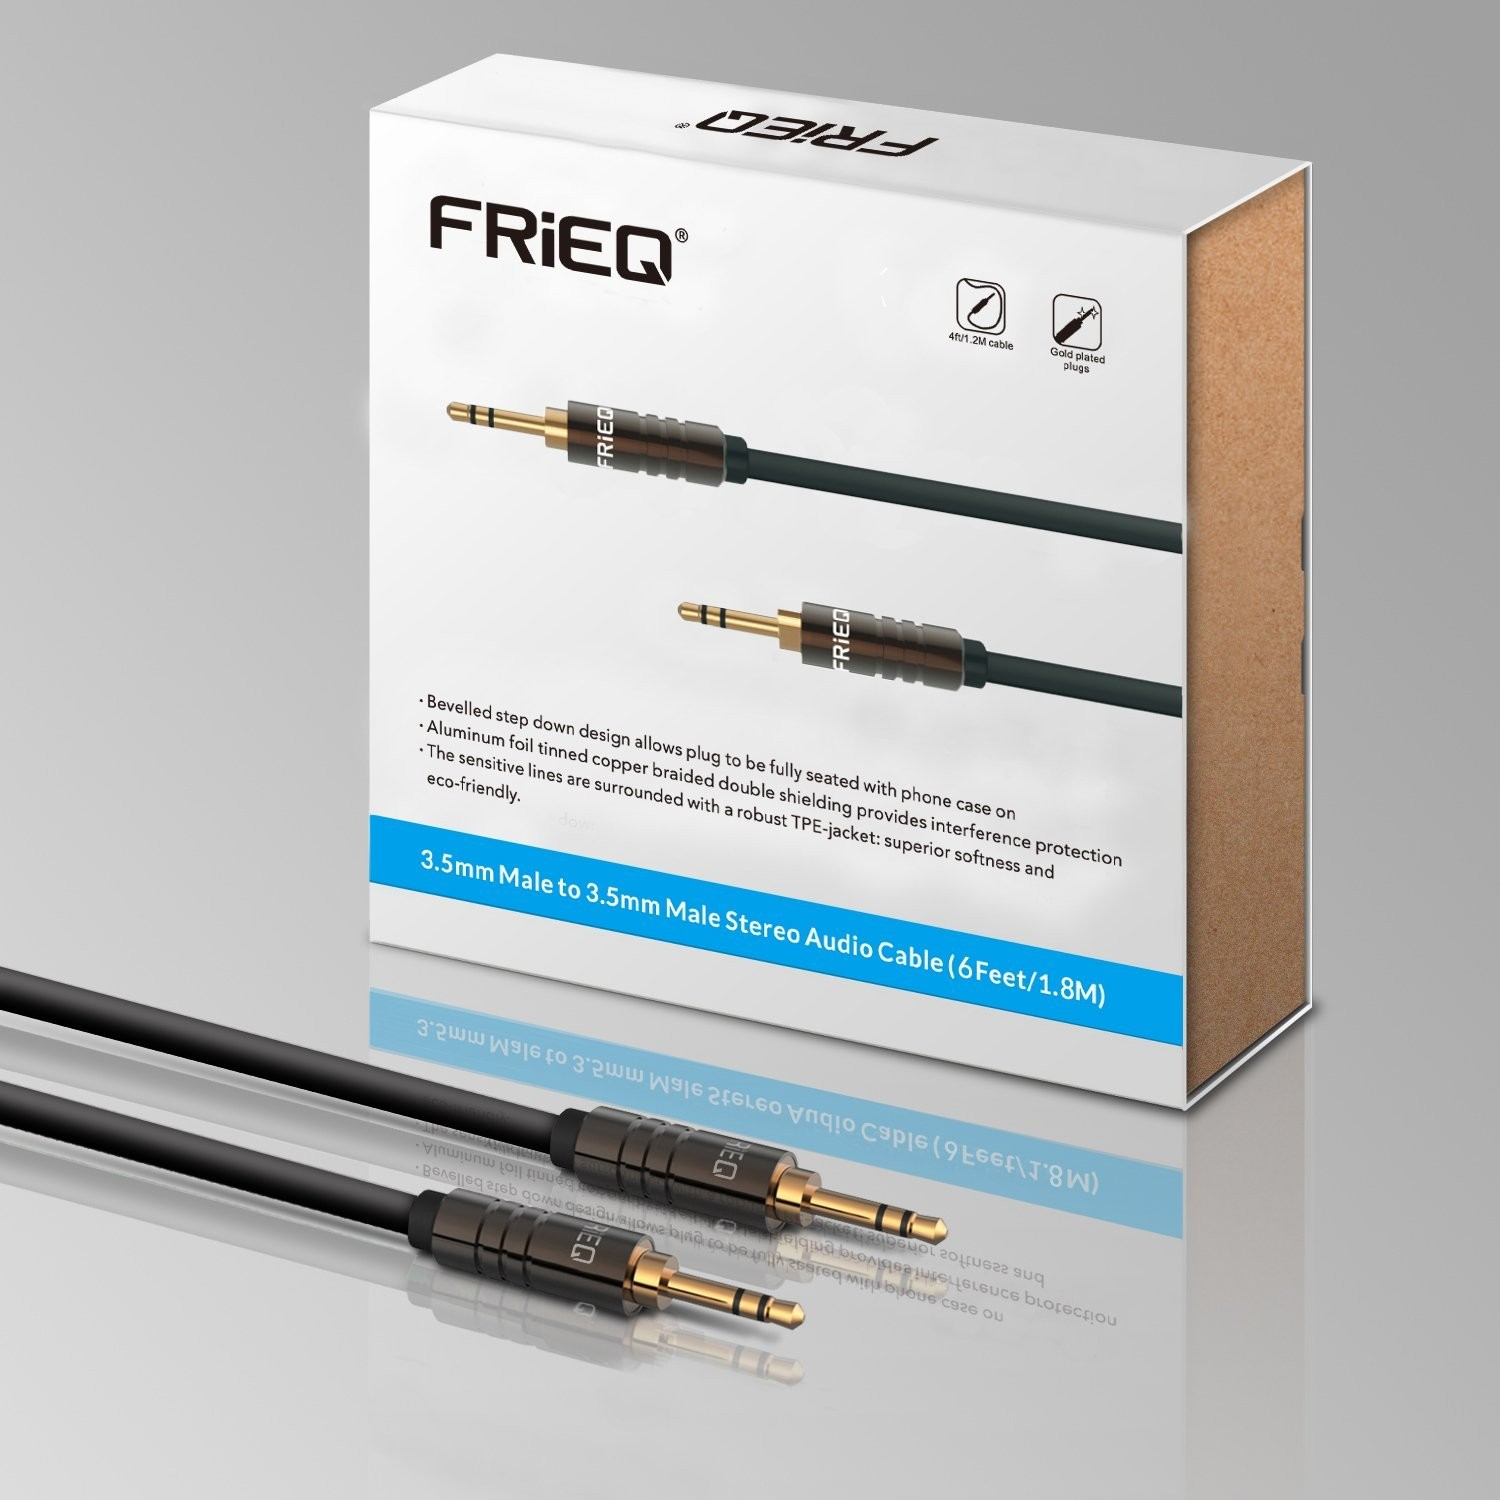 FRiEQ 3.5mm Male To Male Car and Home Stereo TPE Cable Audio Cable (6 Feet/1.8M) Fits Over Tablet & Smart Phone Cases For Apple iPad, iPhone, iPod, Samsung, Android, MP3 Players - Black (Plug will be Fully Seated with Phone Case On), B00WTZQWEC